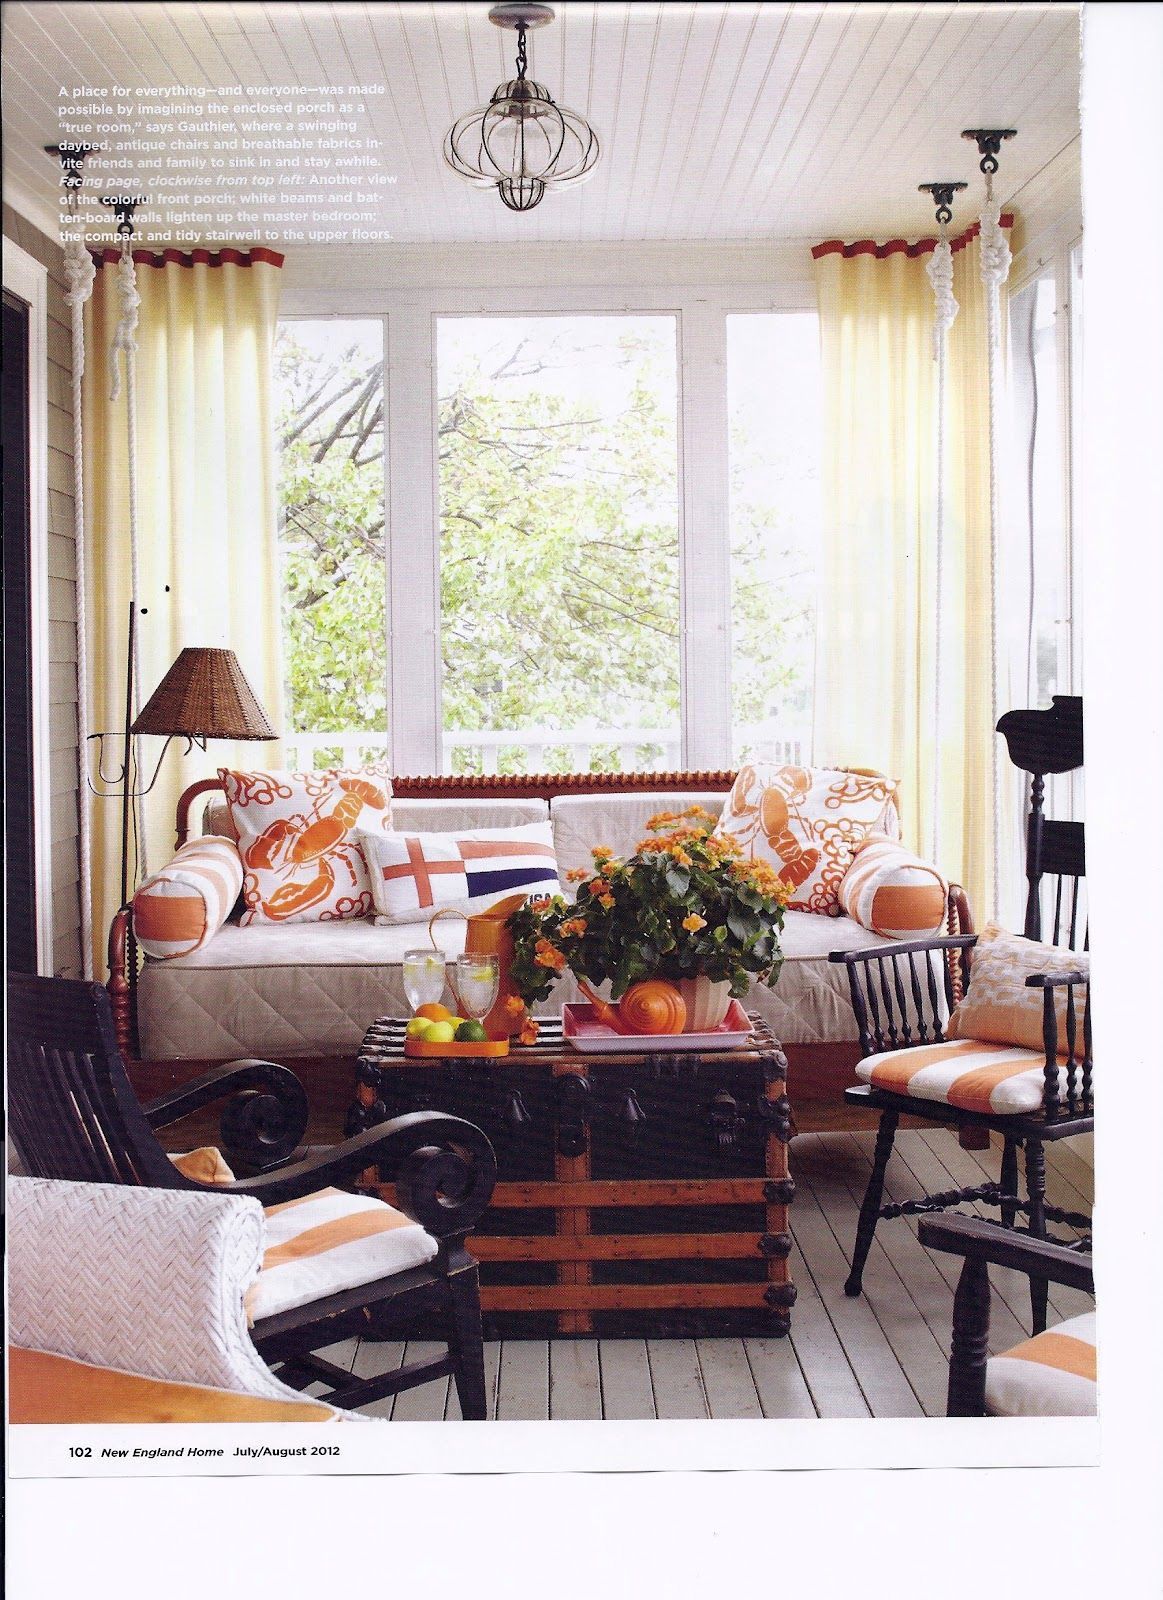 Window ideas for a sunroom  wonderful vintage lv chest  for india  pinterest  porch screened